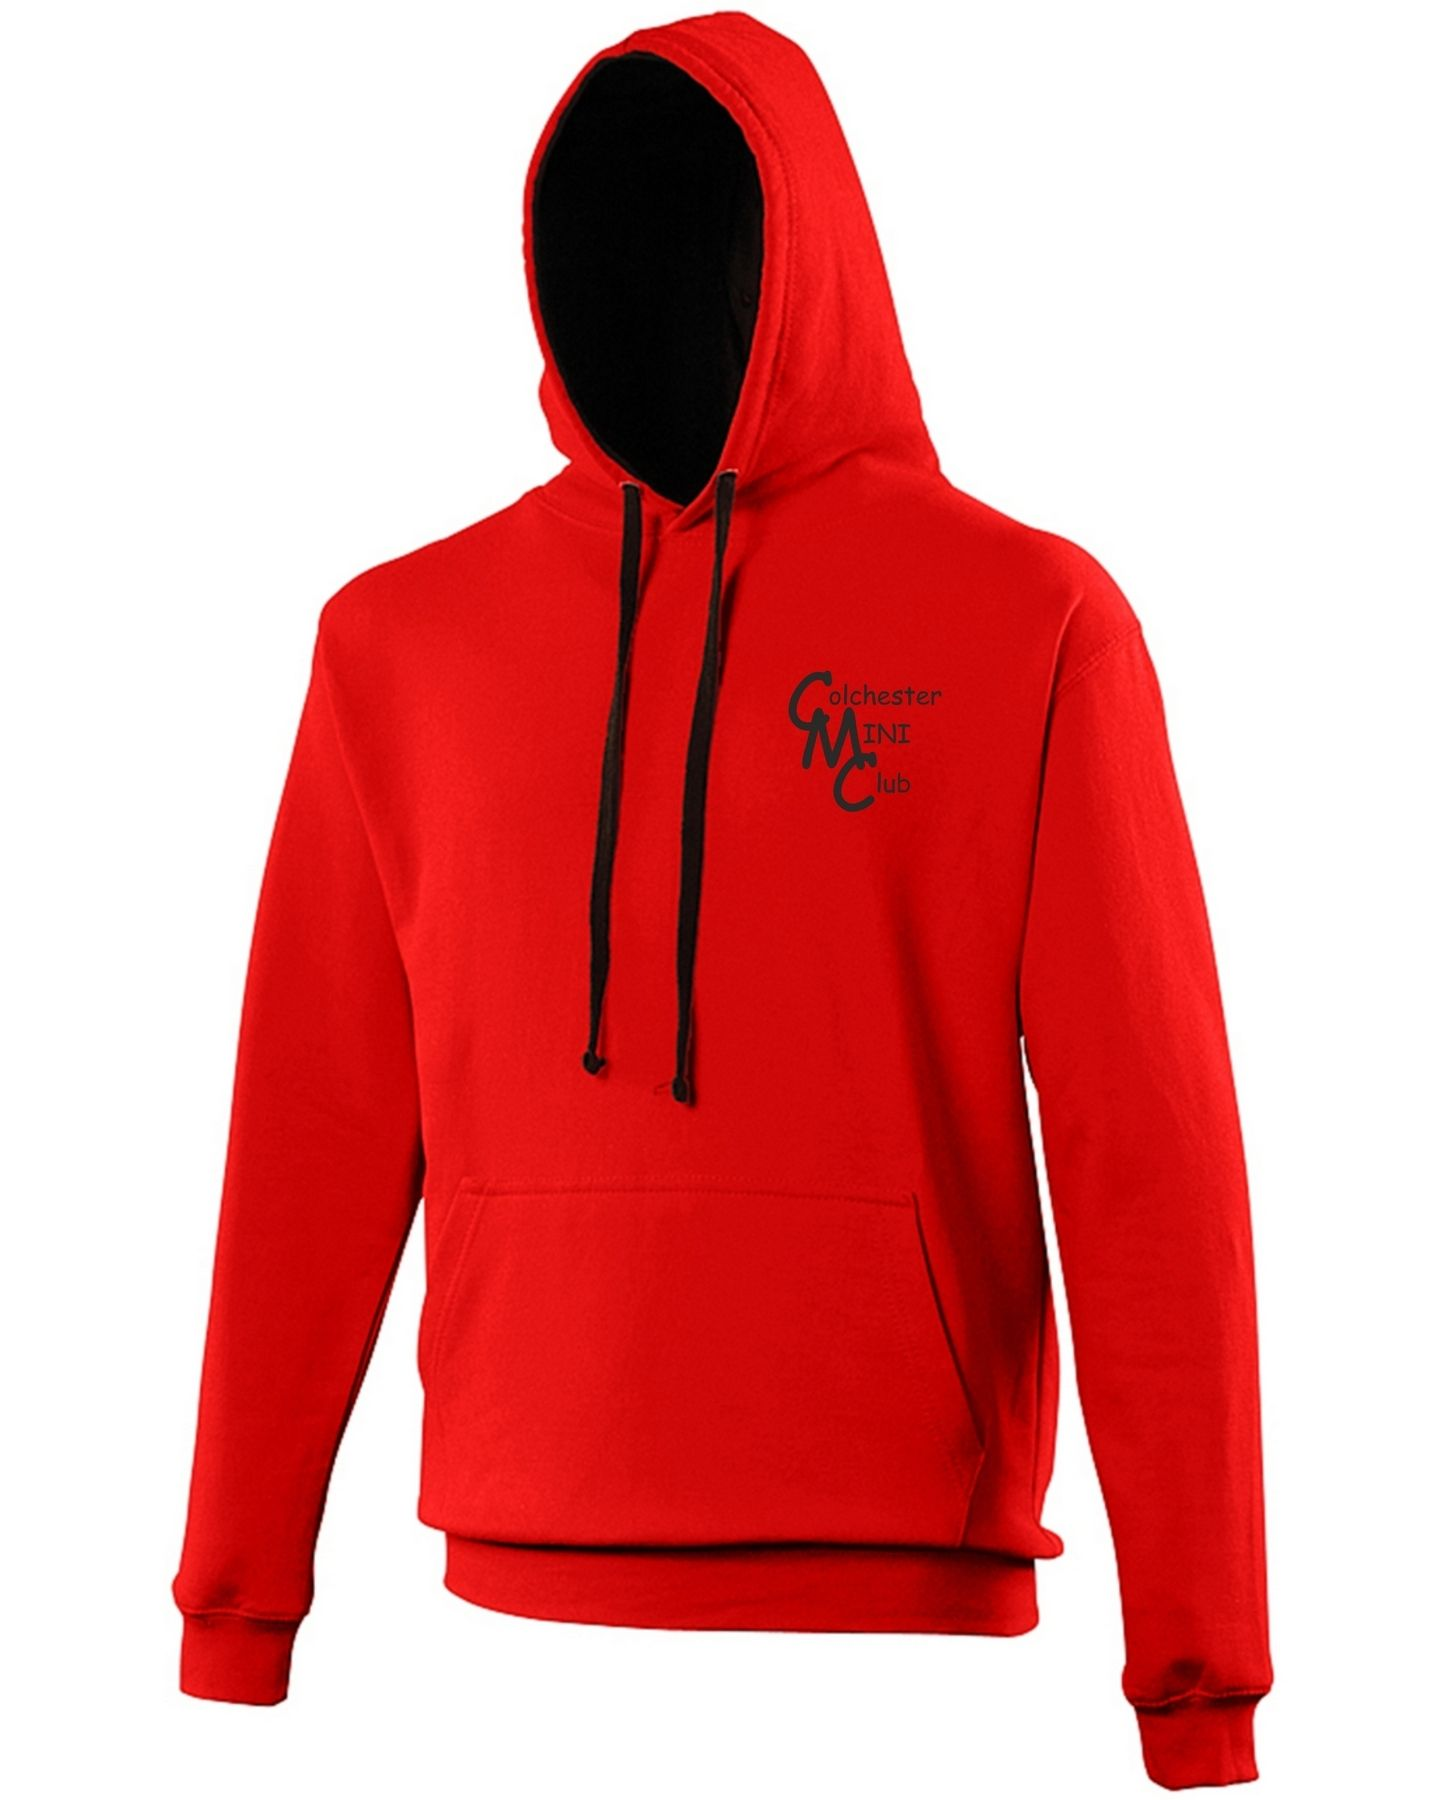 CMC – Varsity Hoodie in Fire Red/Black